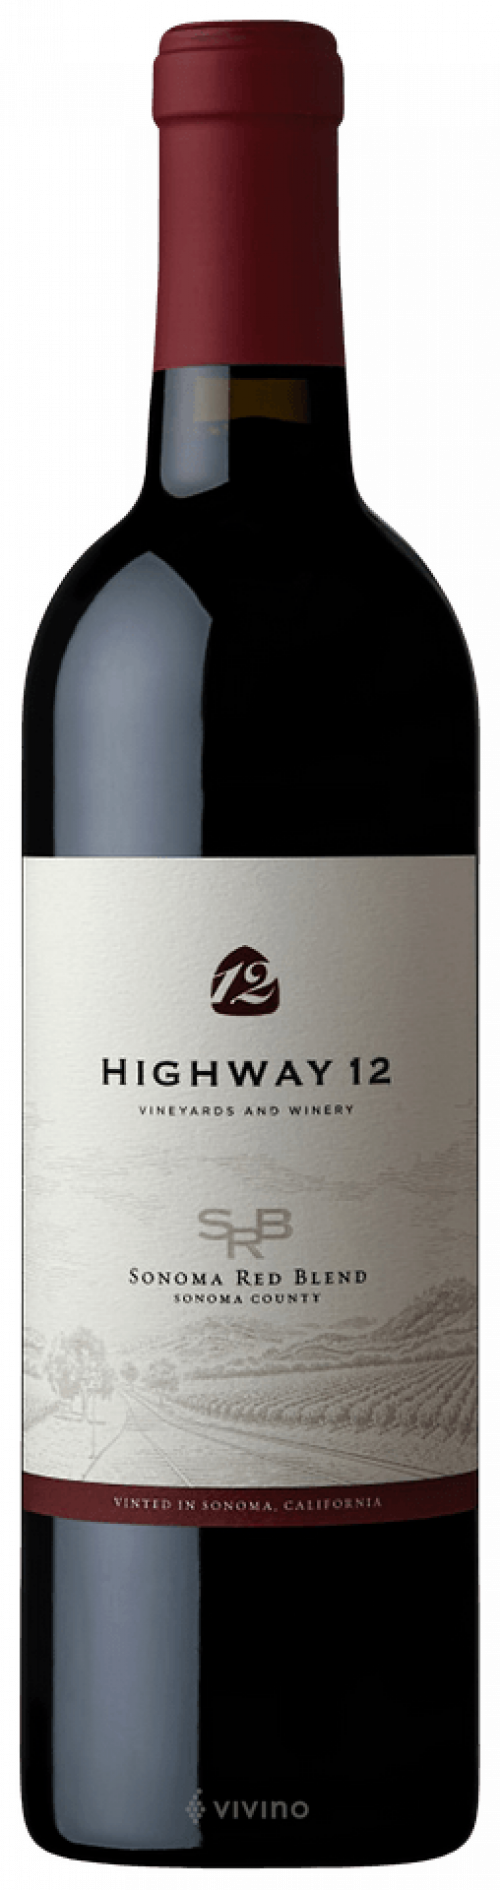 Highway 12 Sonoma Red Blend 750ml